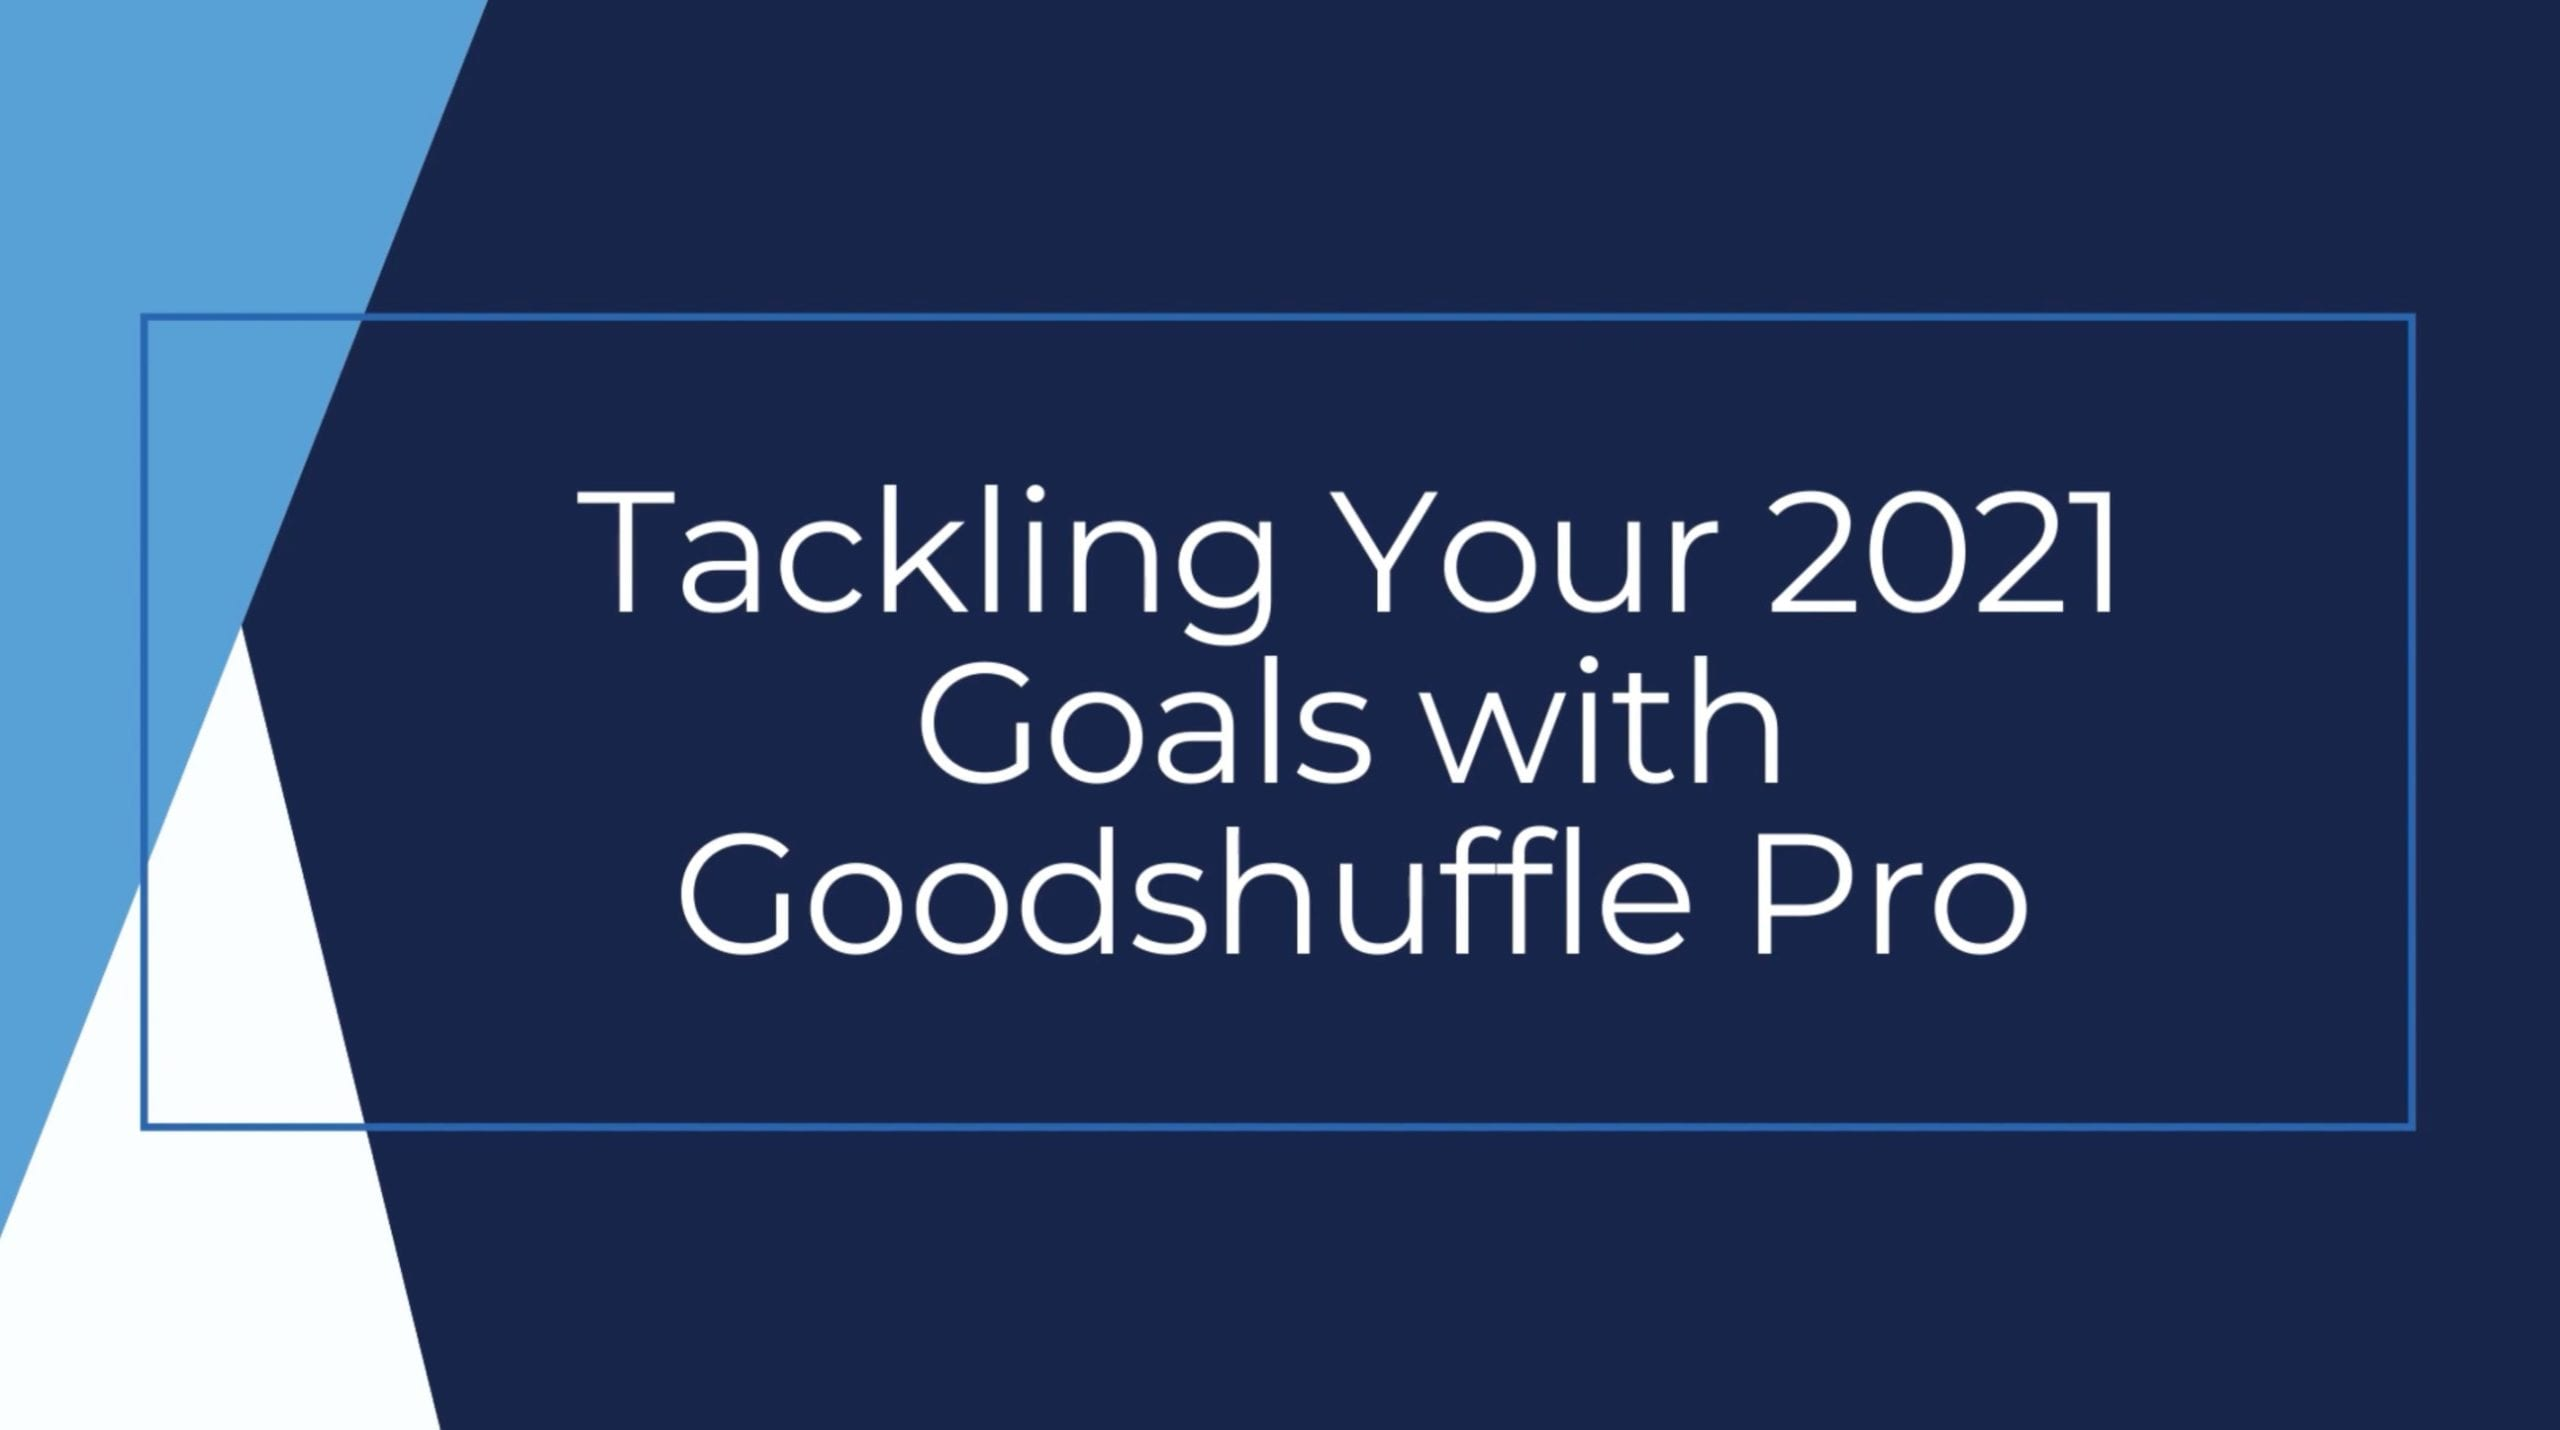 Tackling your 2021 goals with Goodshuffle Pro webinar